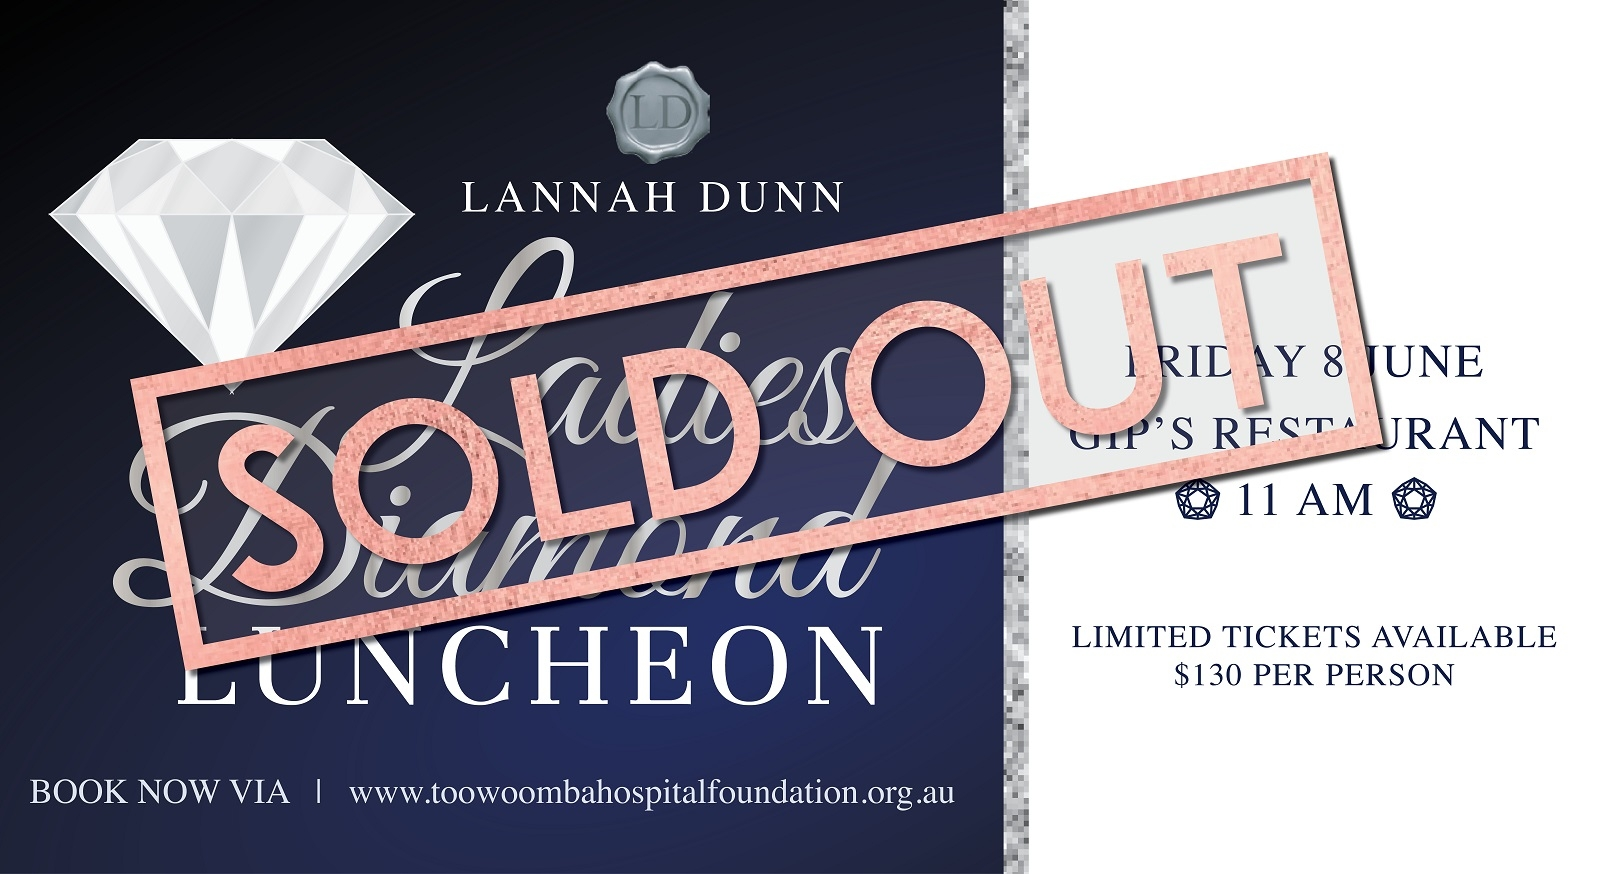 Lannah Dunn Ladies Diamond Luncheon